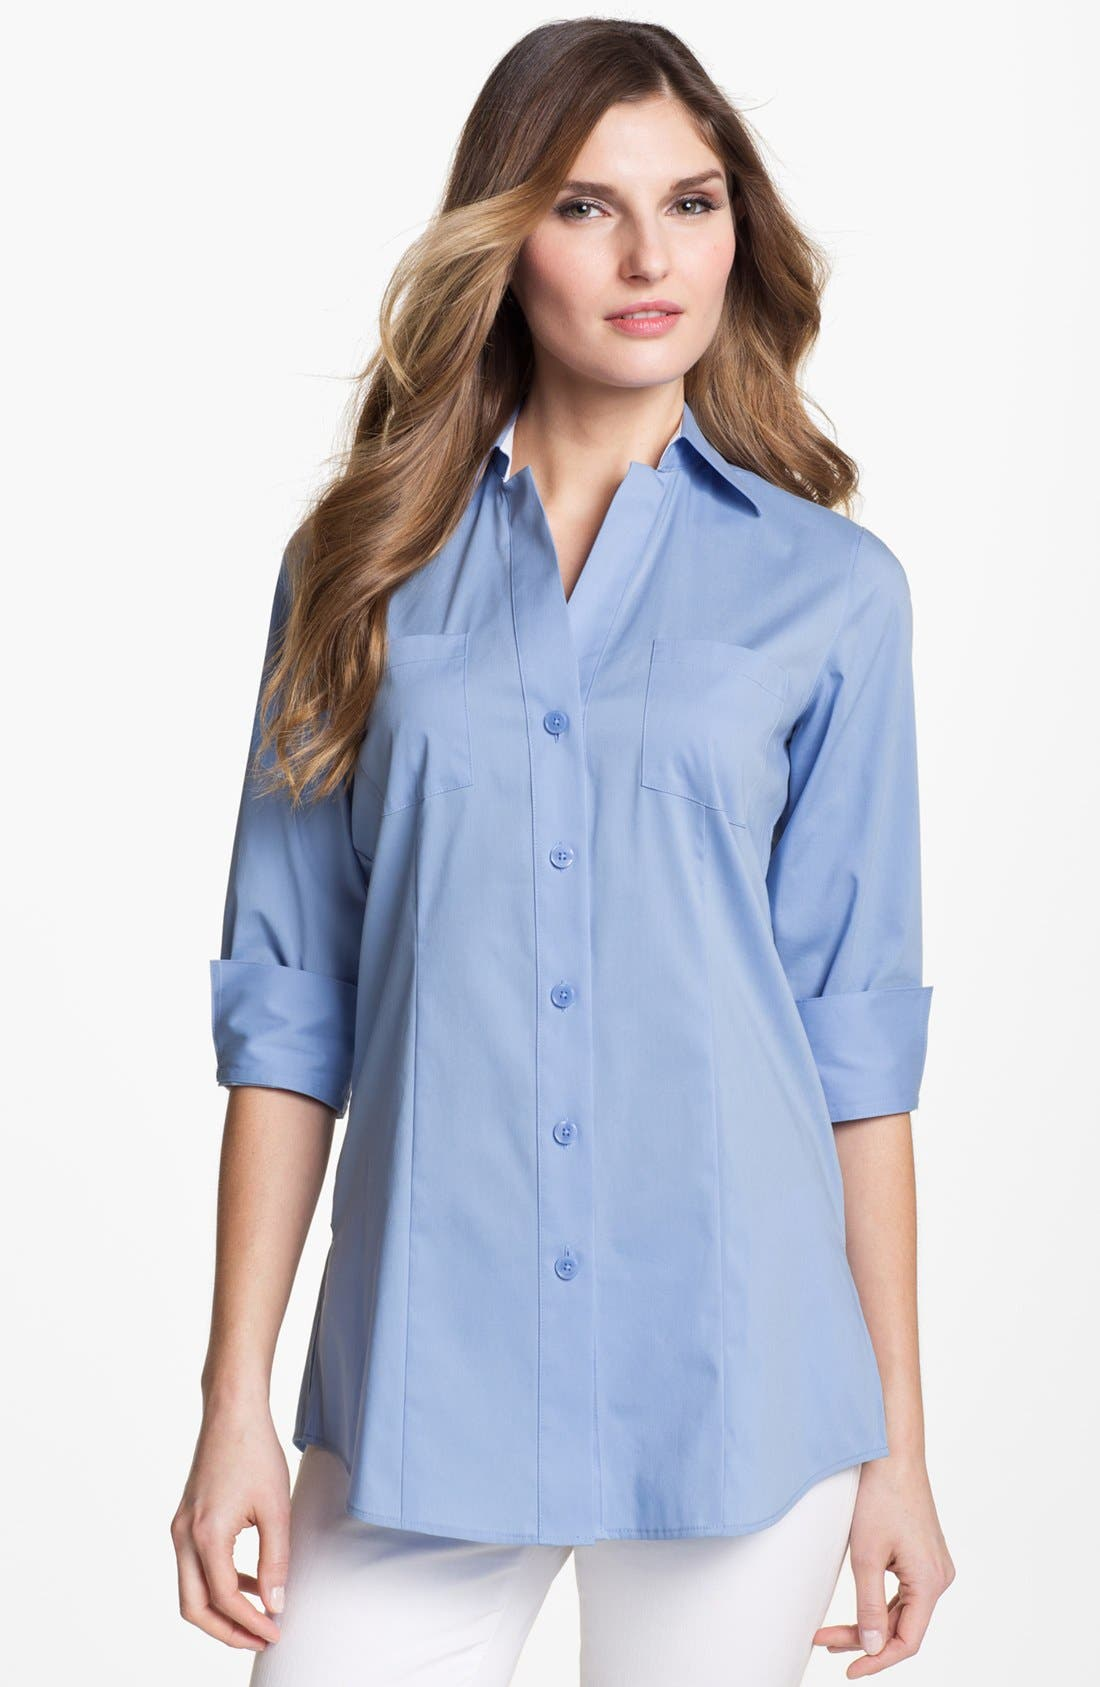 Main Image - Foxcroft Three Quarter Sleeve Shaped Shirt